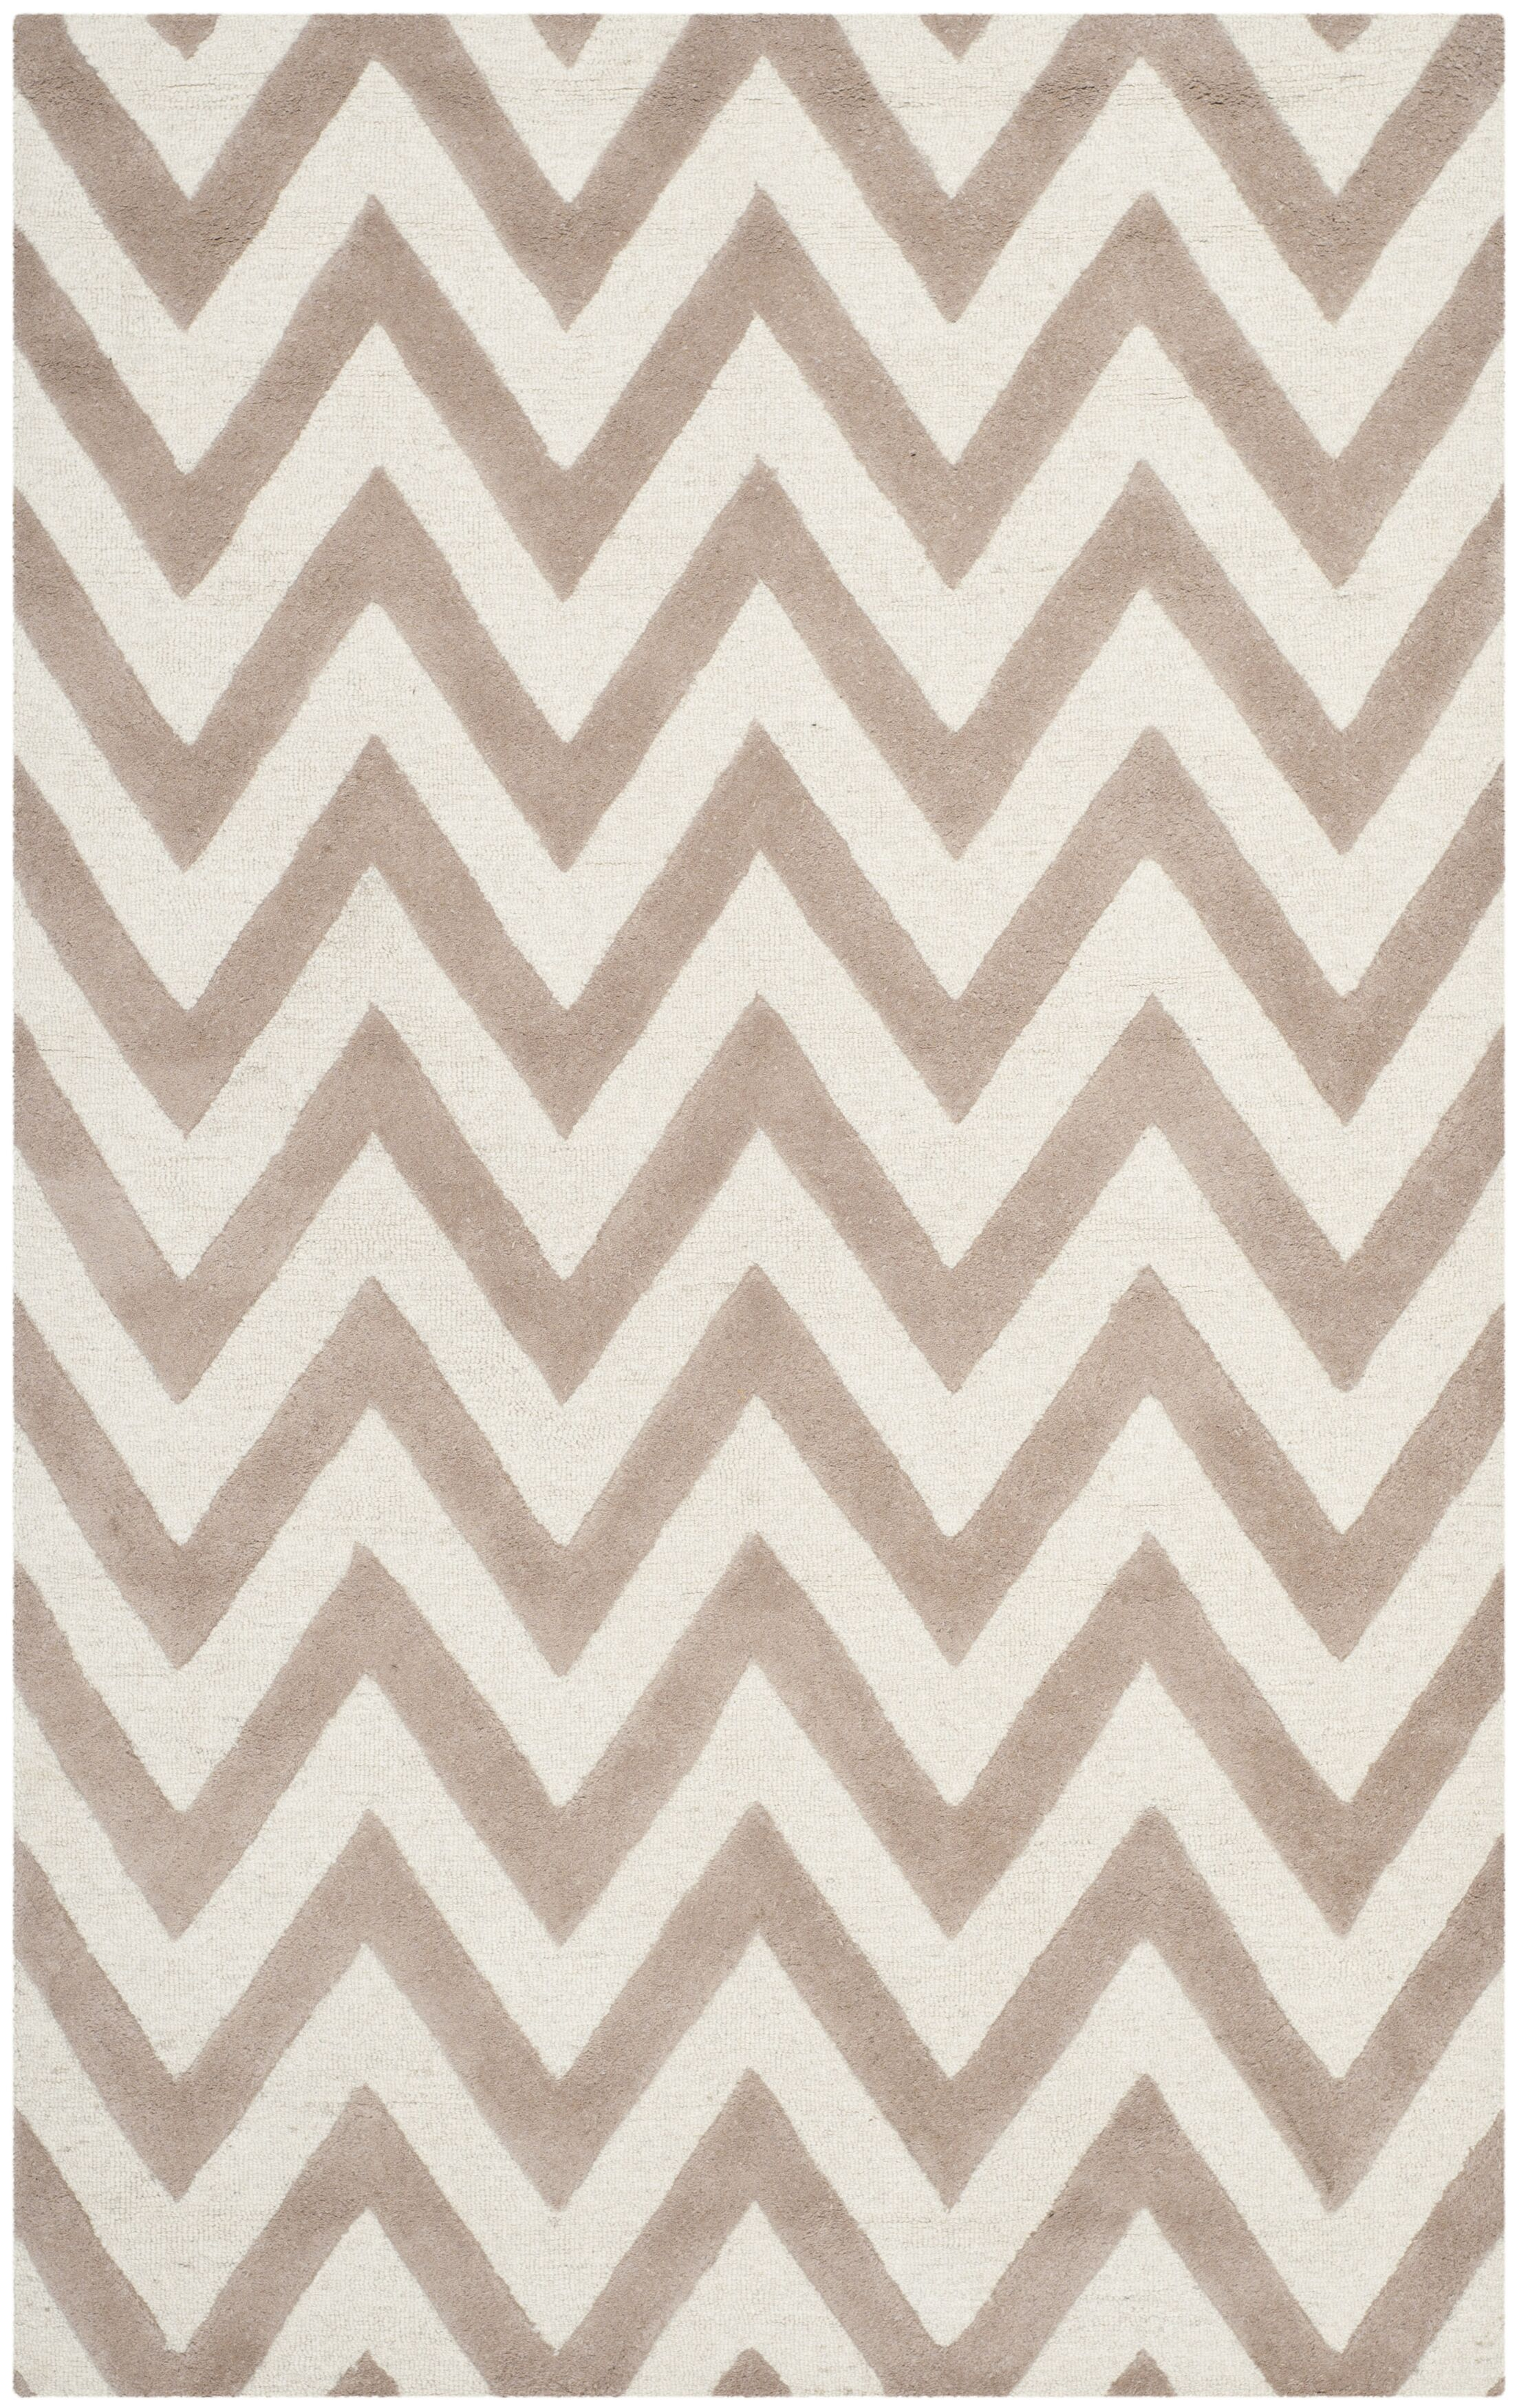 Charlenne Hand-Tufted Wool Beige/Brown Area Rug Rug Size: Rectangle 5' x 8'